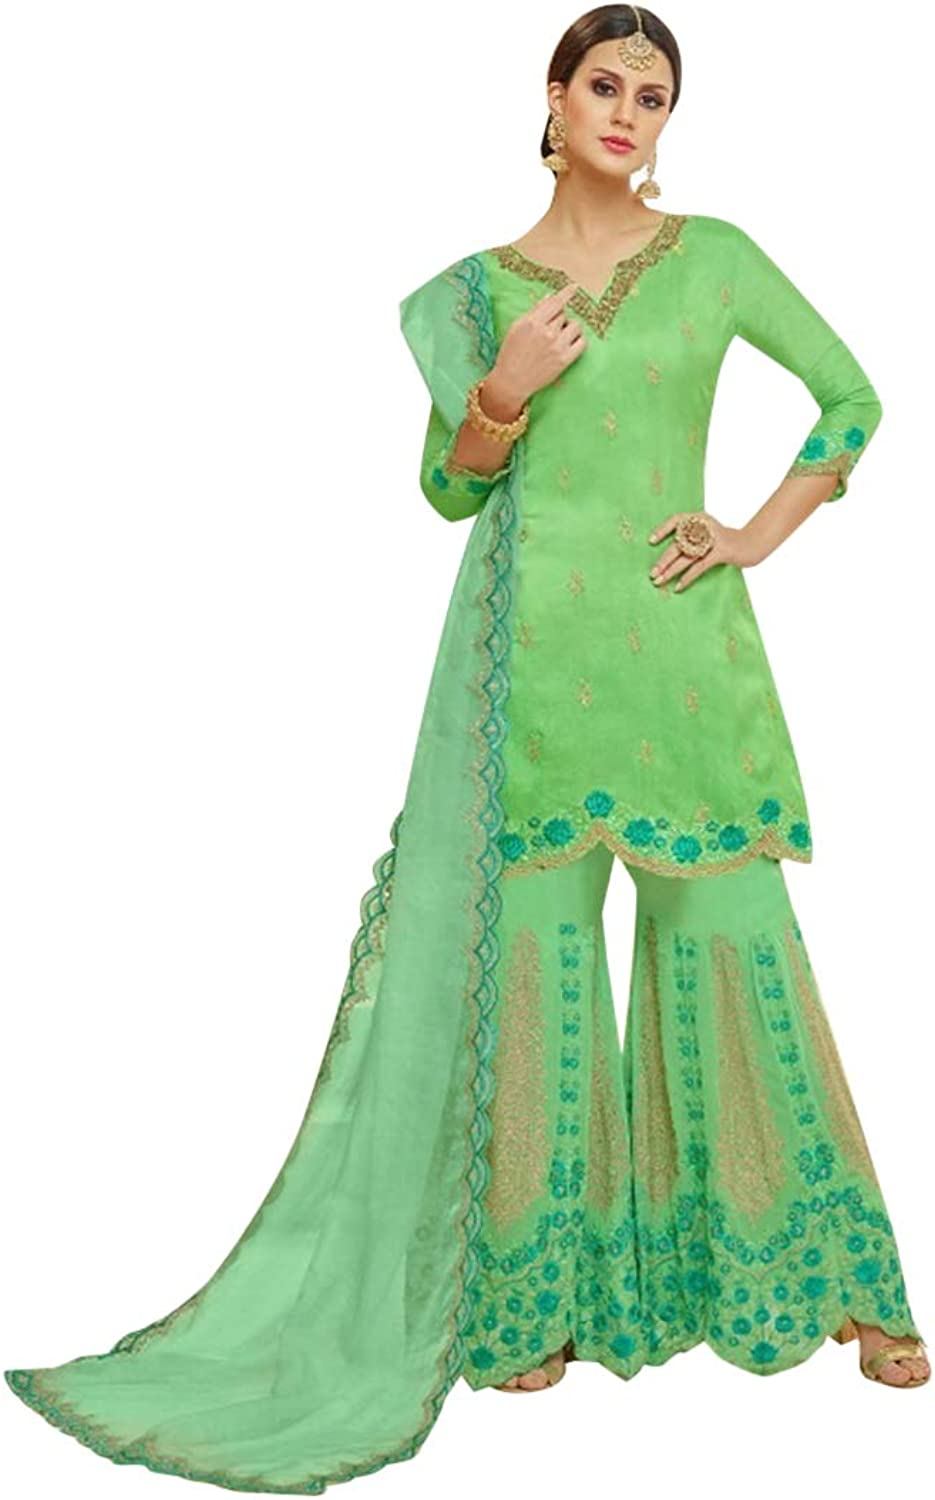 Sea Green Muslim Reception Ceremony Upada Silk Sharara suit for Women with Heavy Embroidery Indian dress 7608